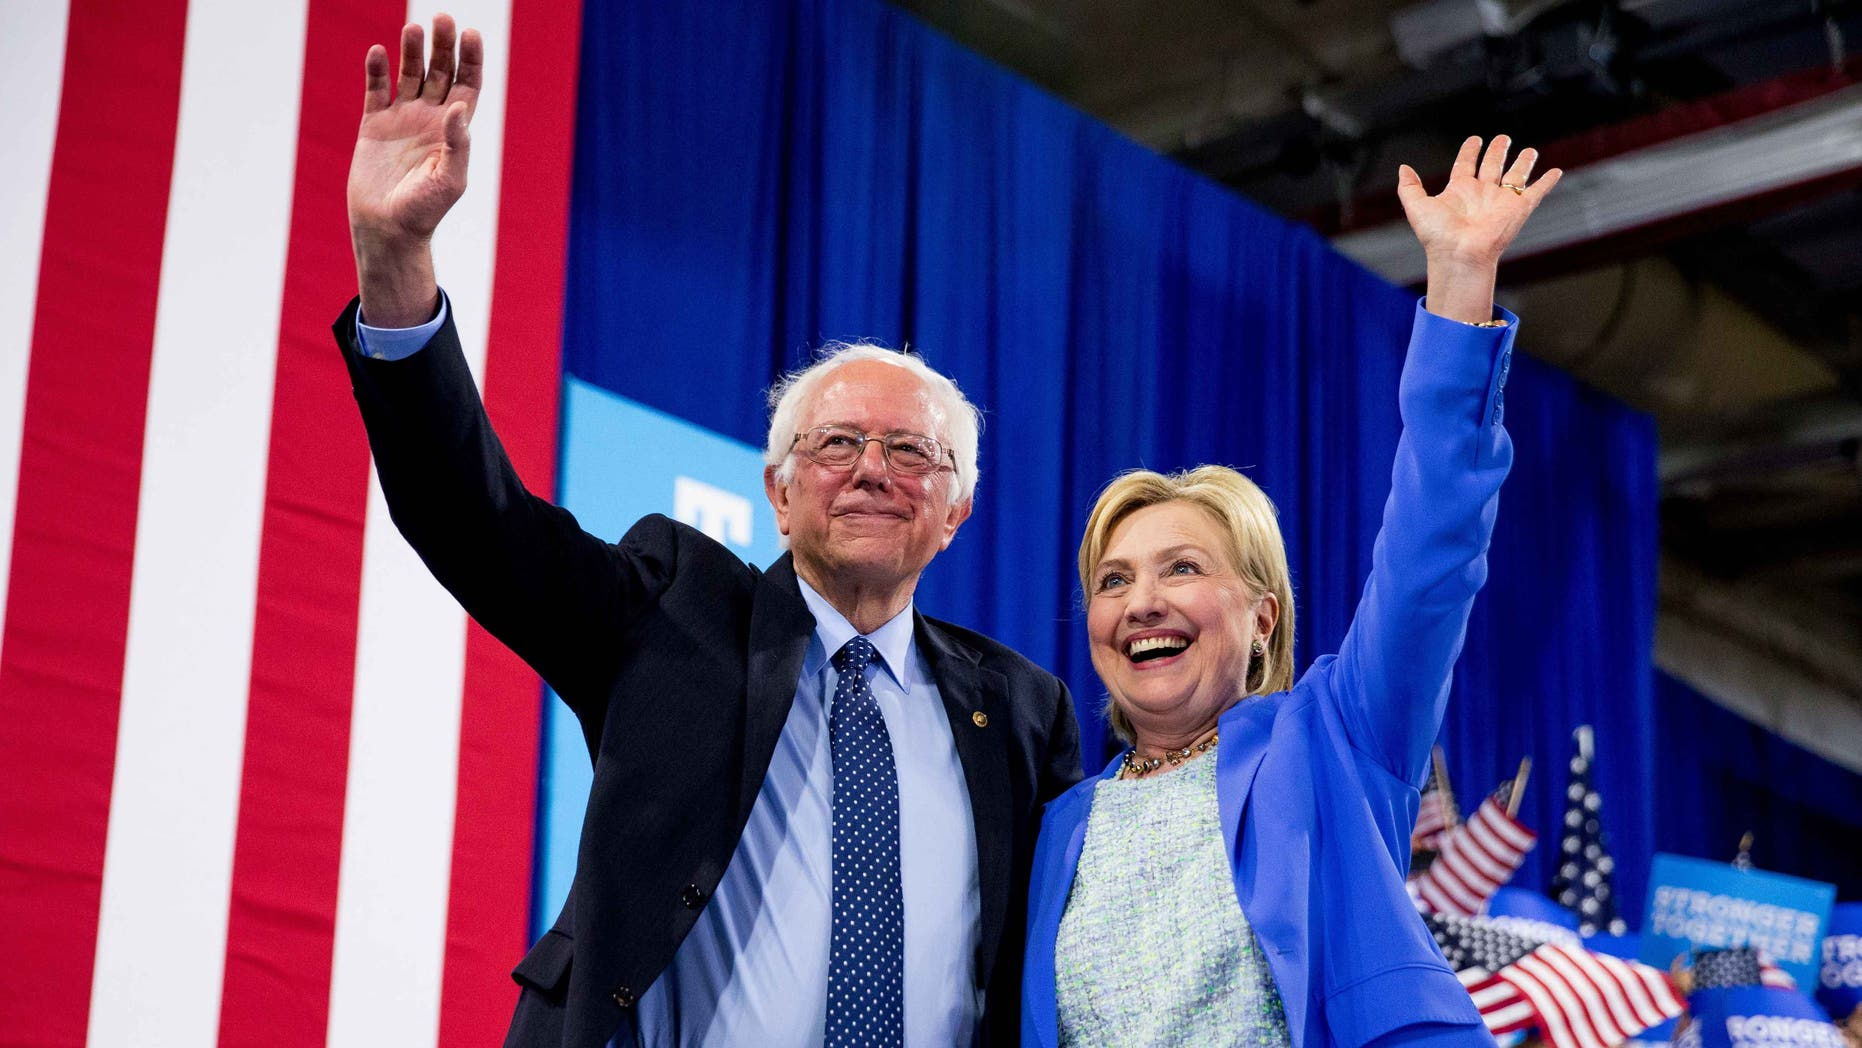 Hillary Clinton and Sen. Bernie Sanders during a rally in Portsmouth, N.H., Tuesday, July 12, 2016.